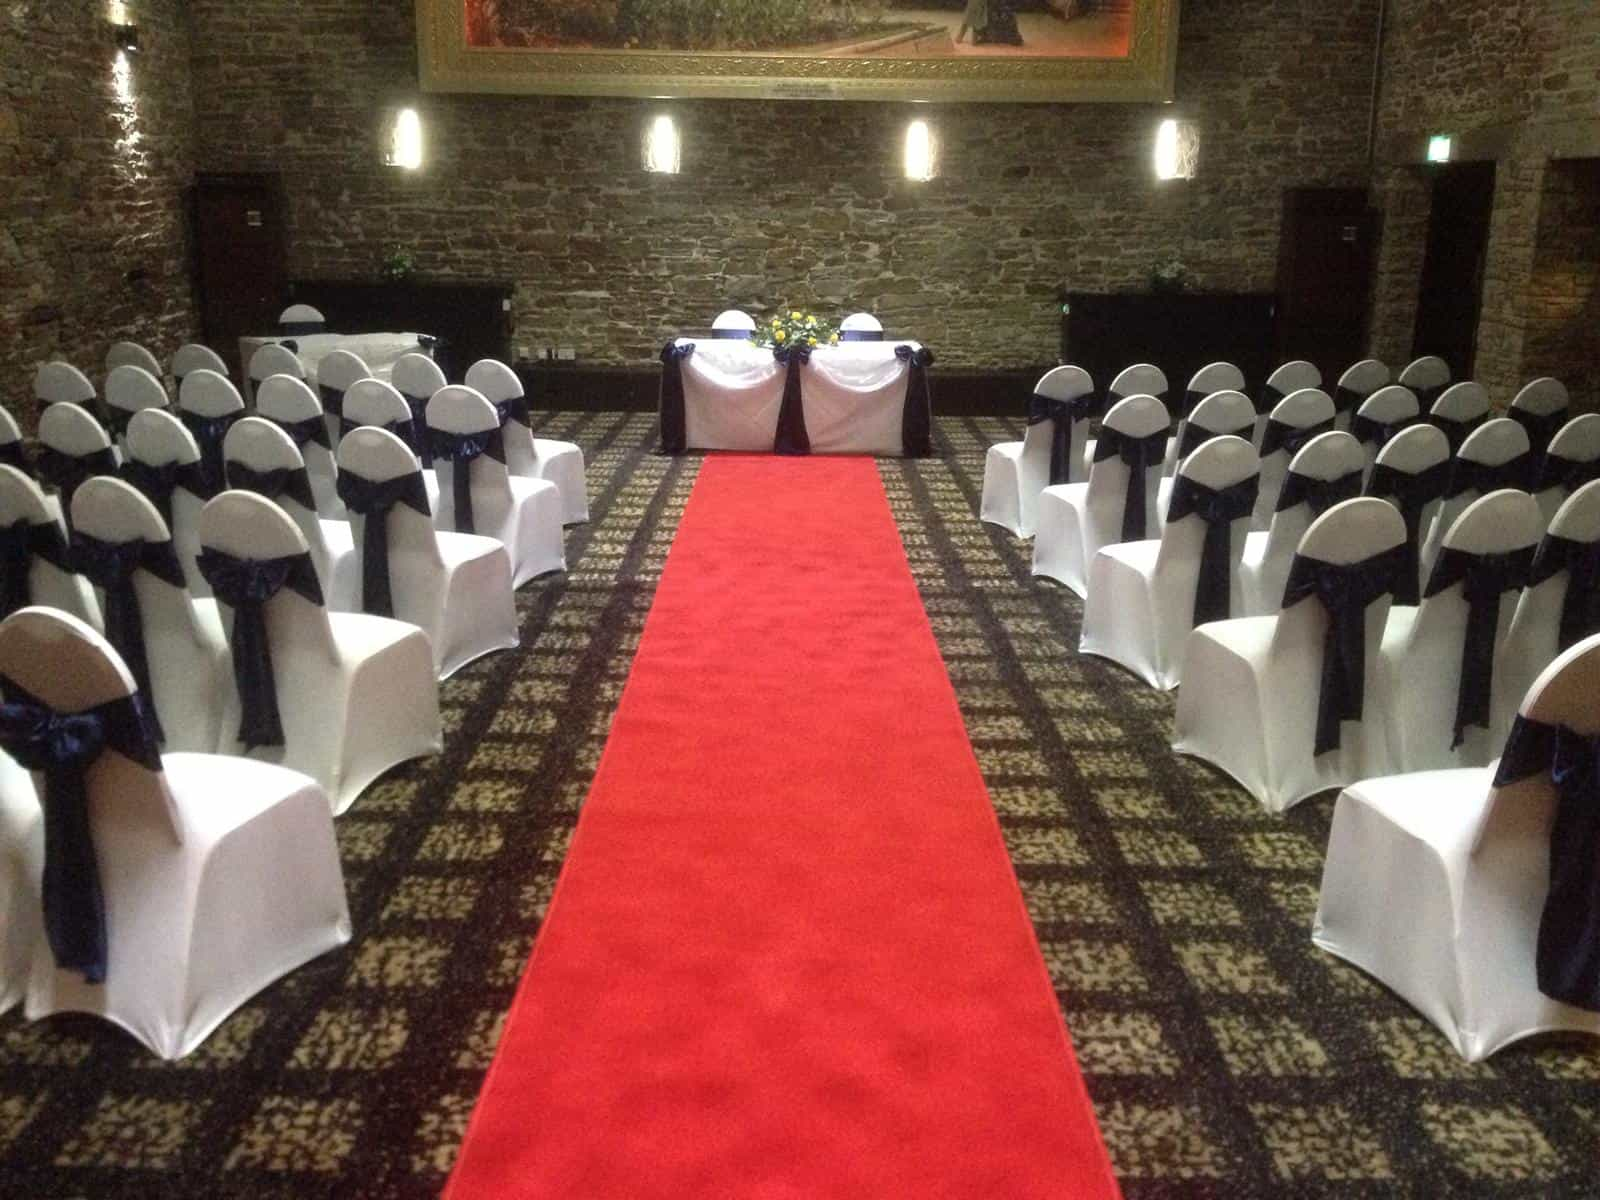 Wedding ceremony in a dark room with a red aisle runner